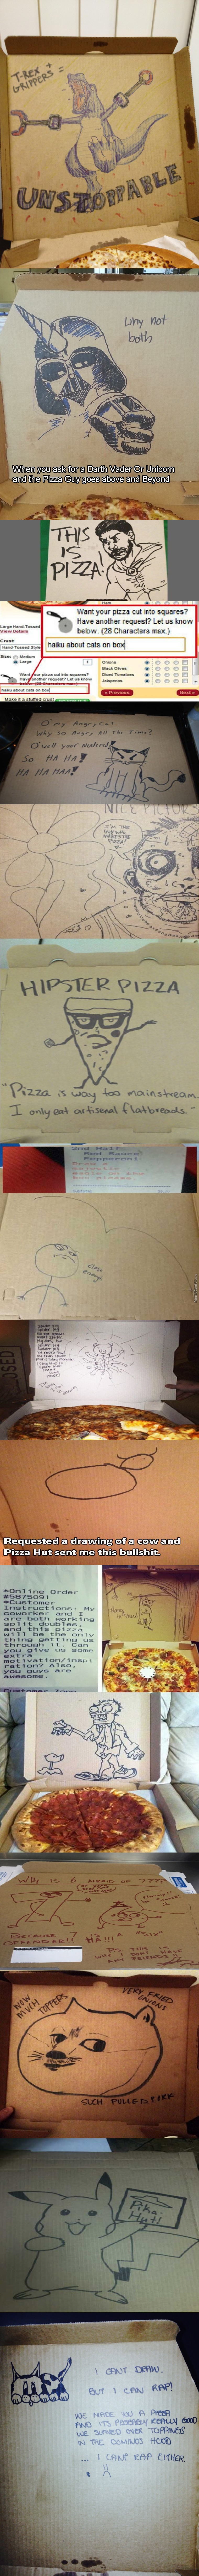 Art Of The Pizza Box 3